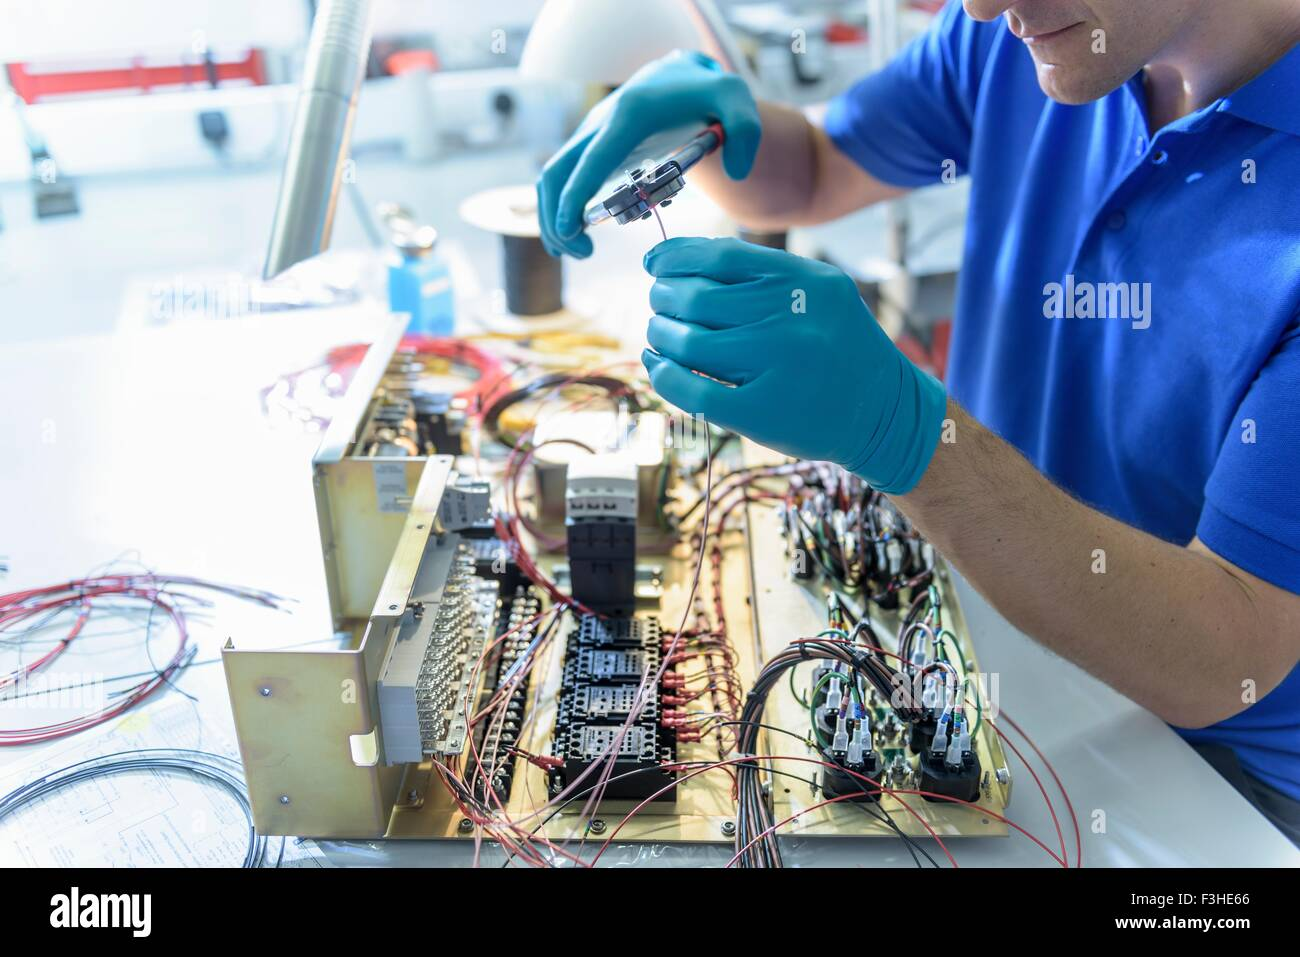 Worker assembling electronics in electronics factory - Stock Image